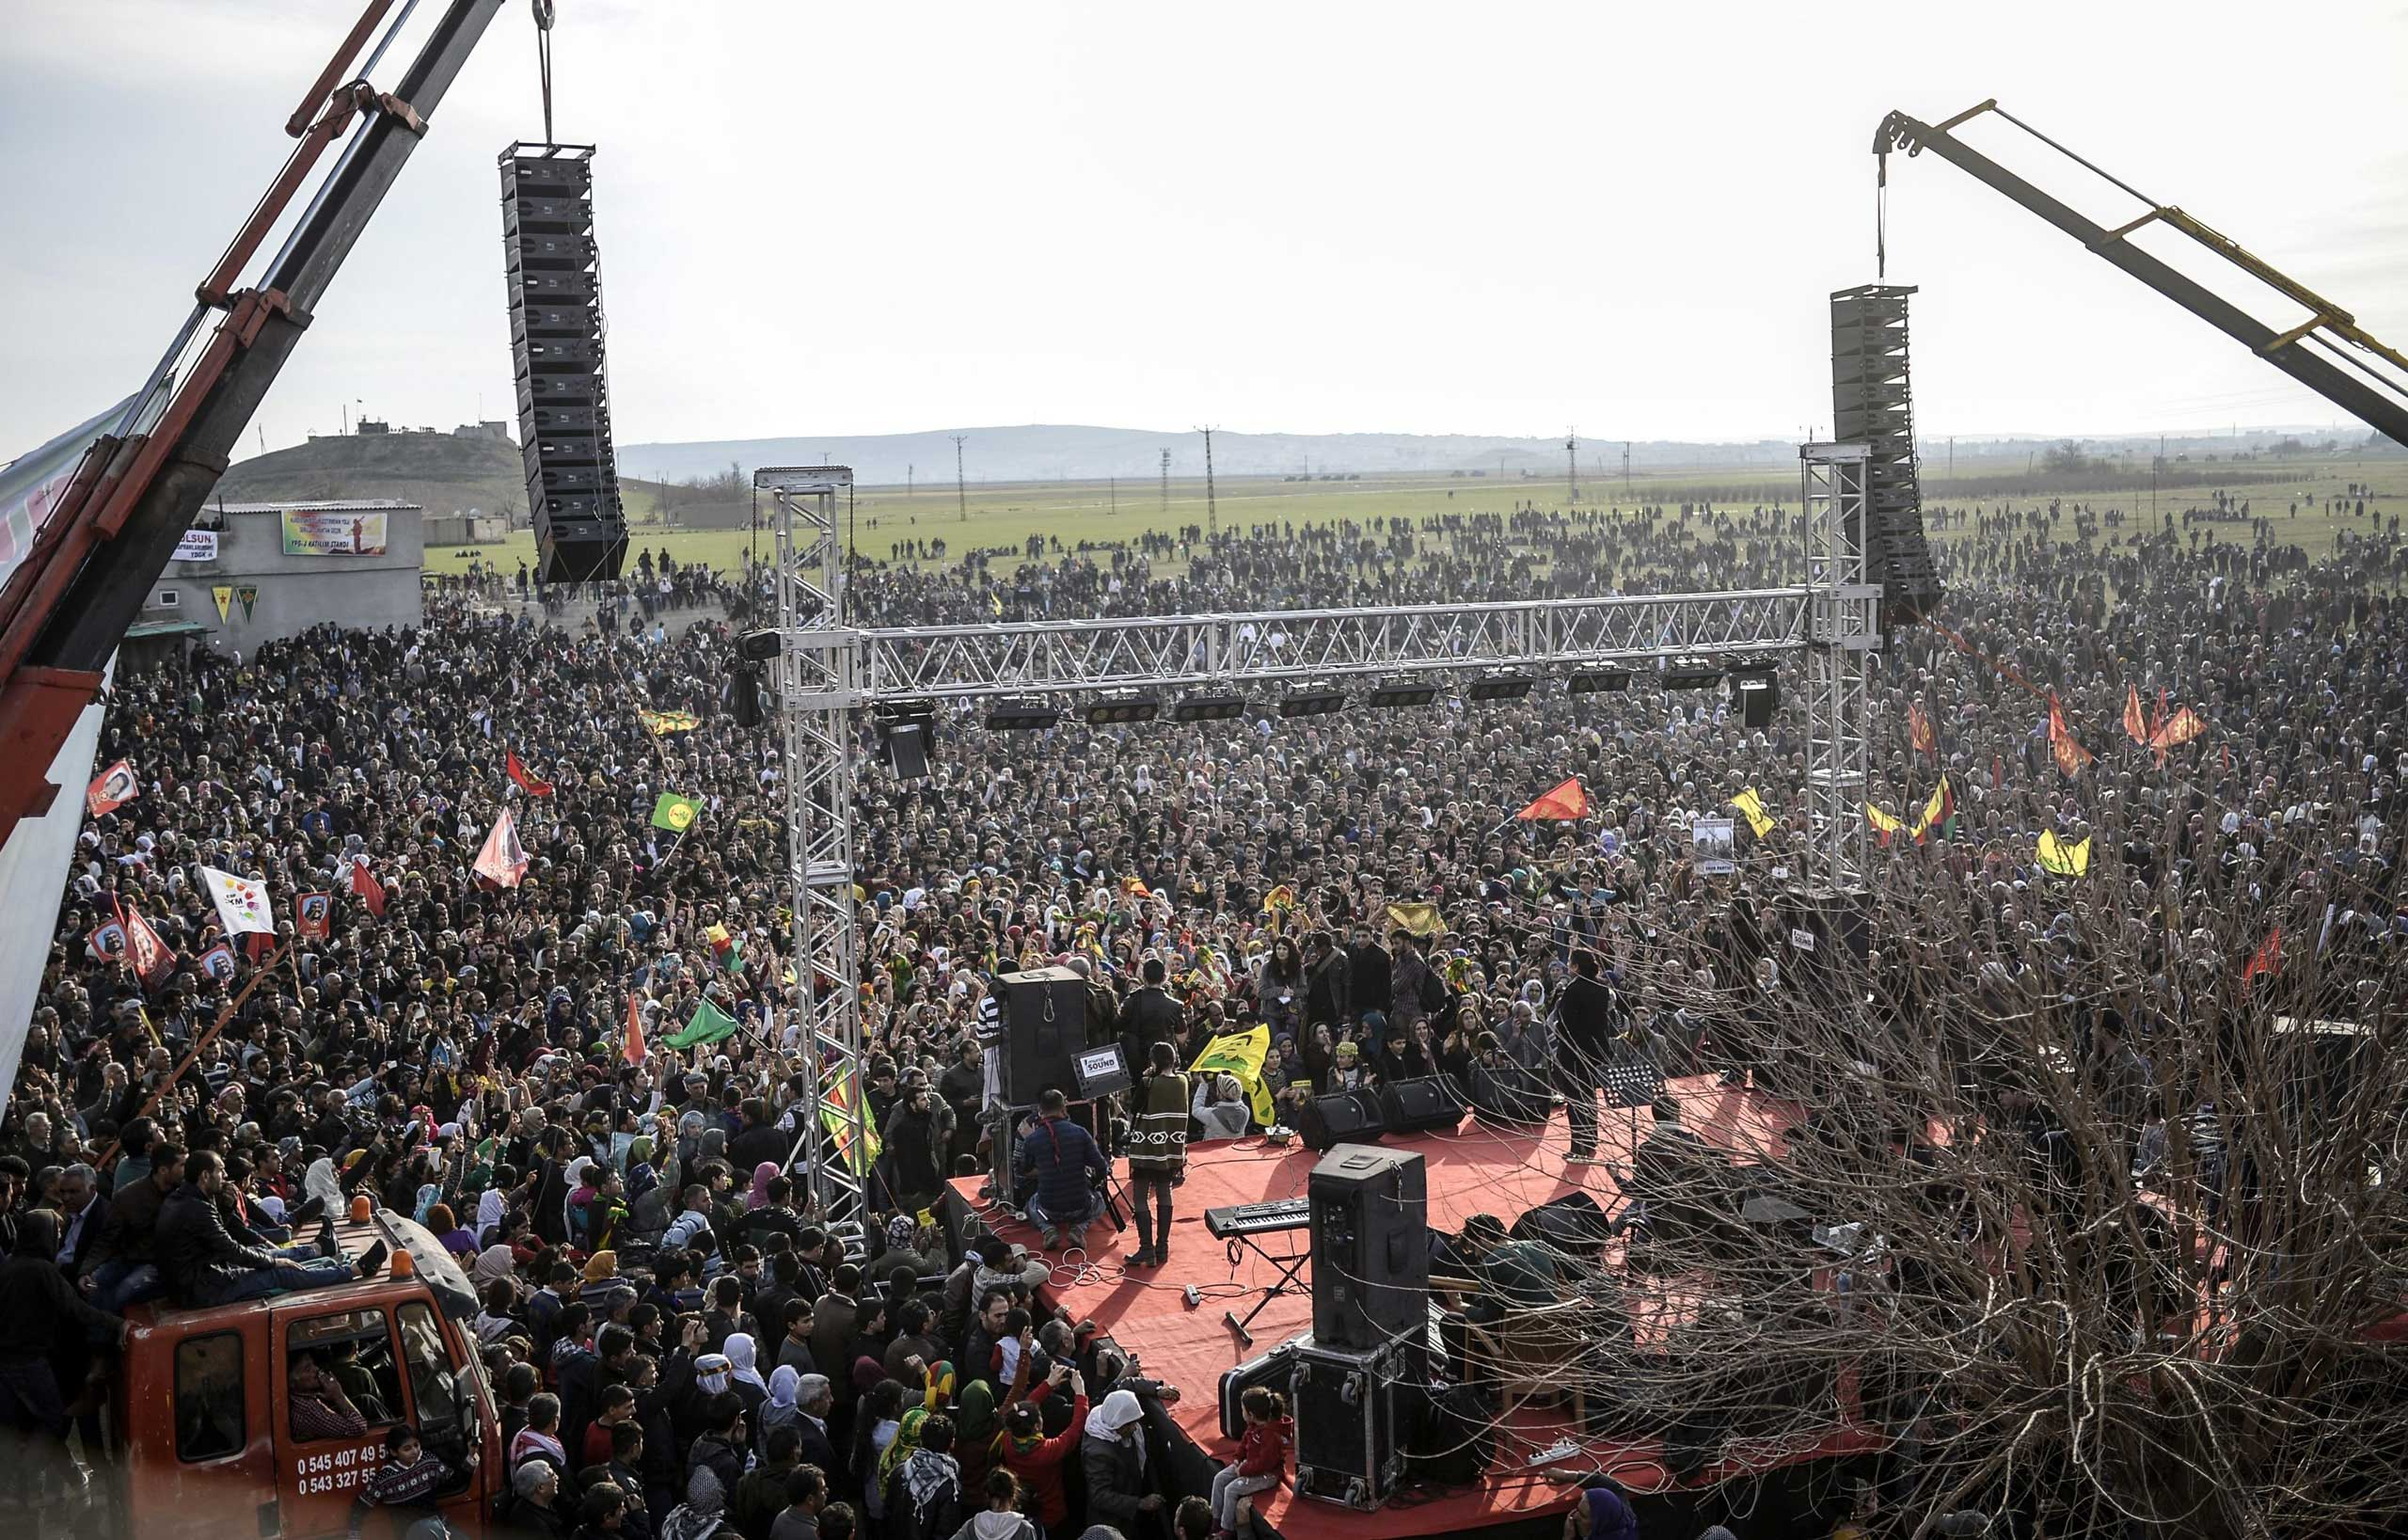 Kurdish people celebrate the declared victory over ISIS for control of Kobani near the Turkish-Syrian border in Suruc, Turkey, Jan. 27, 2015.